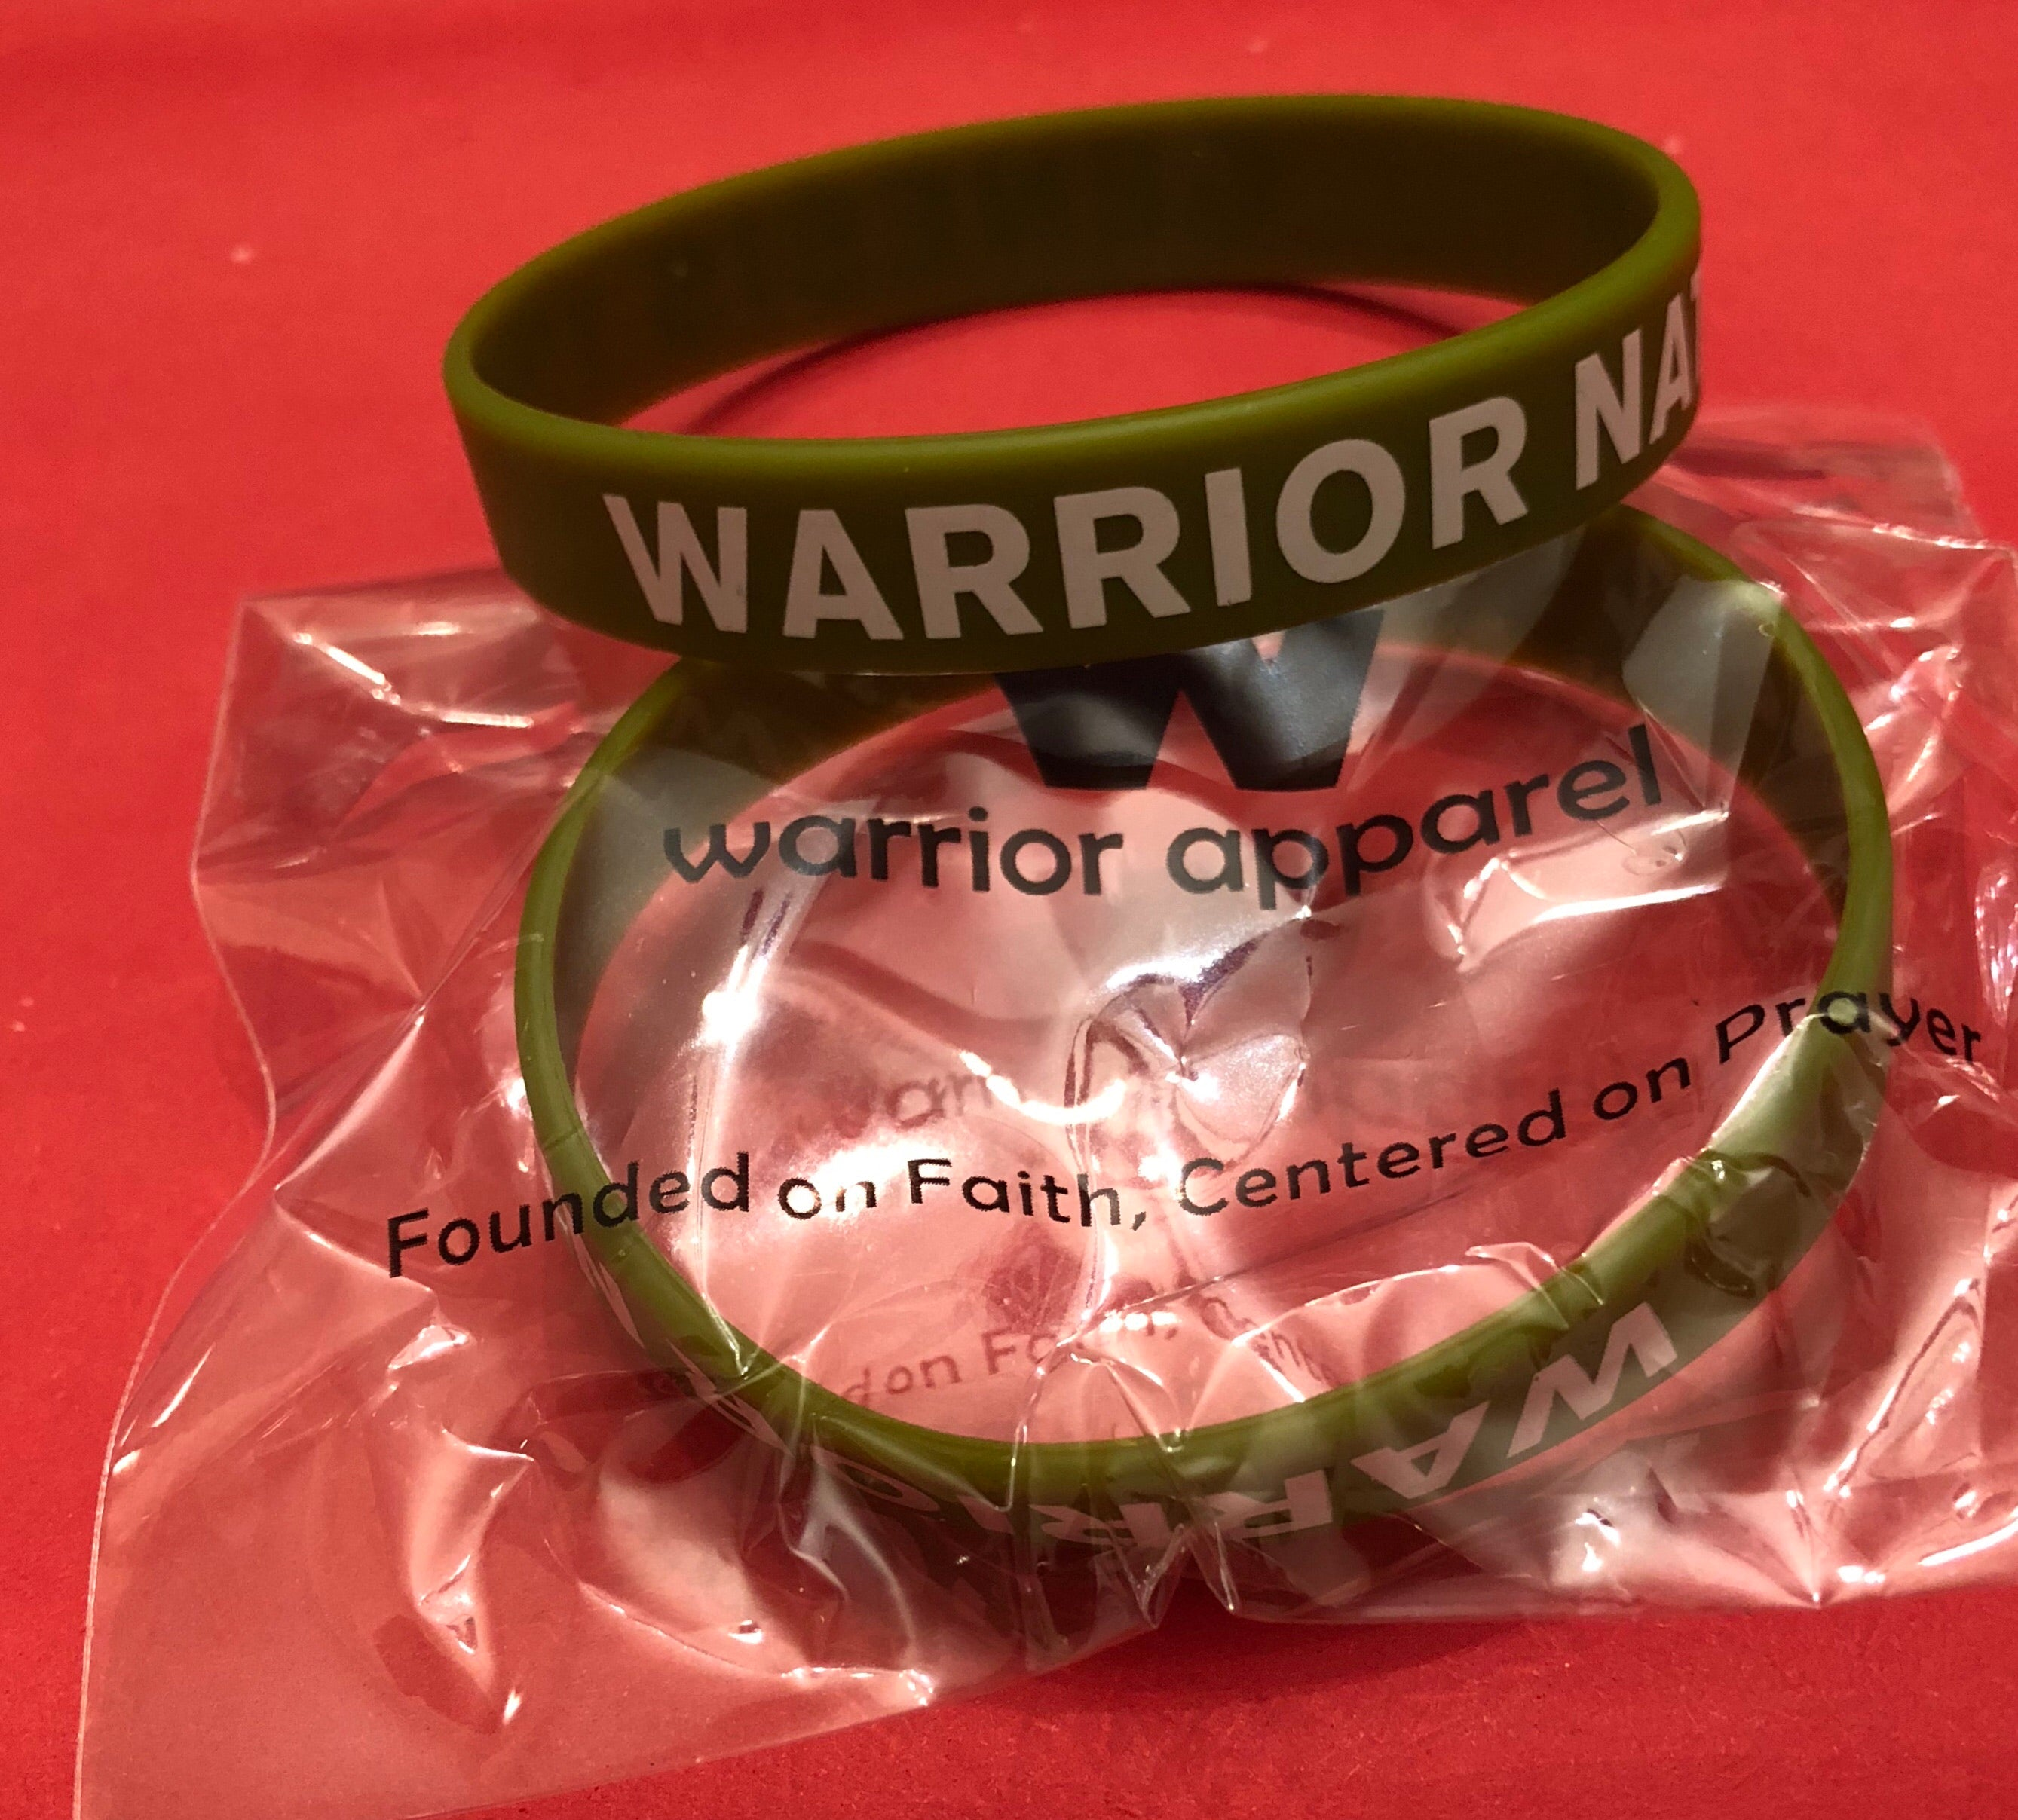 Warrior Nation Wristband